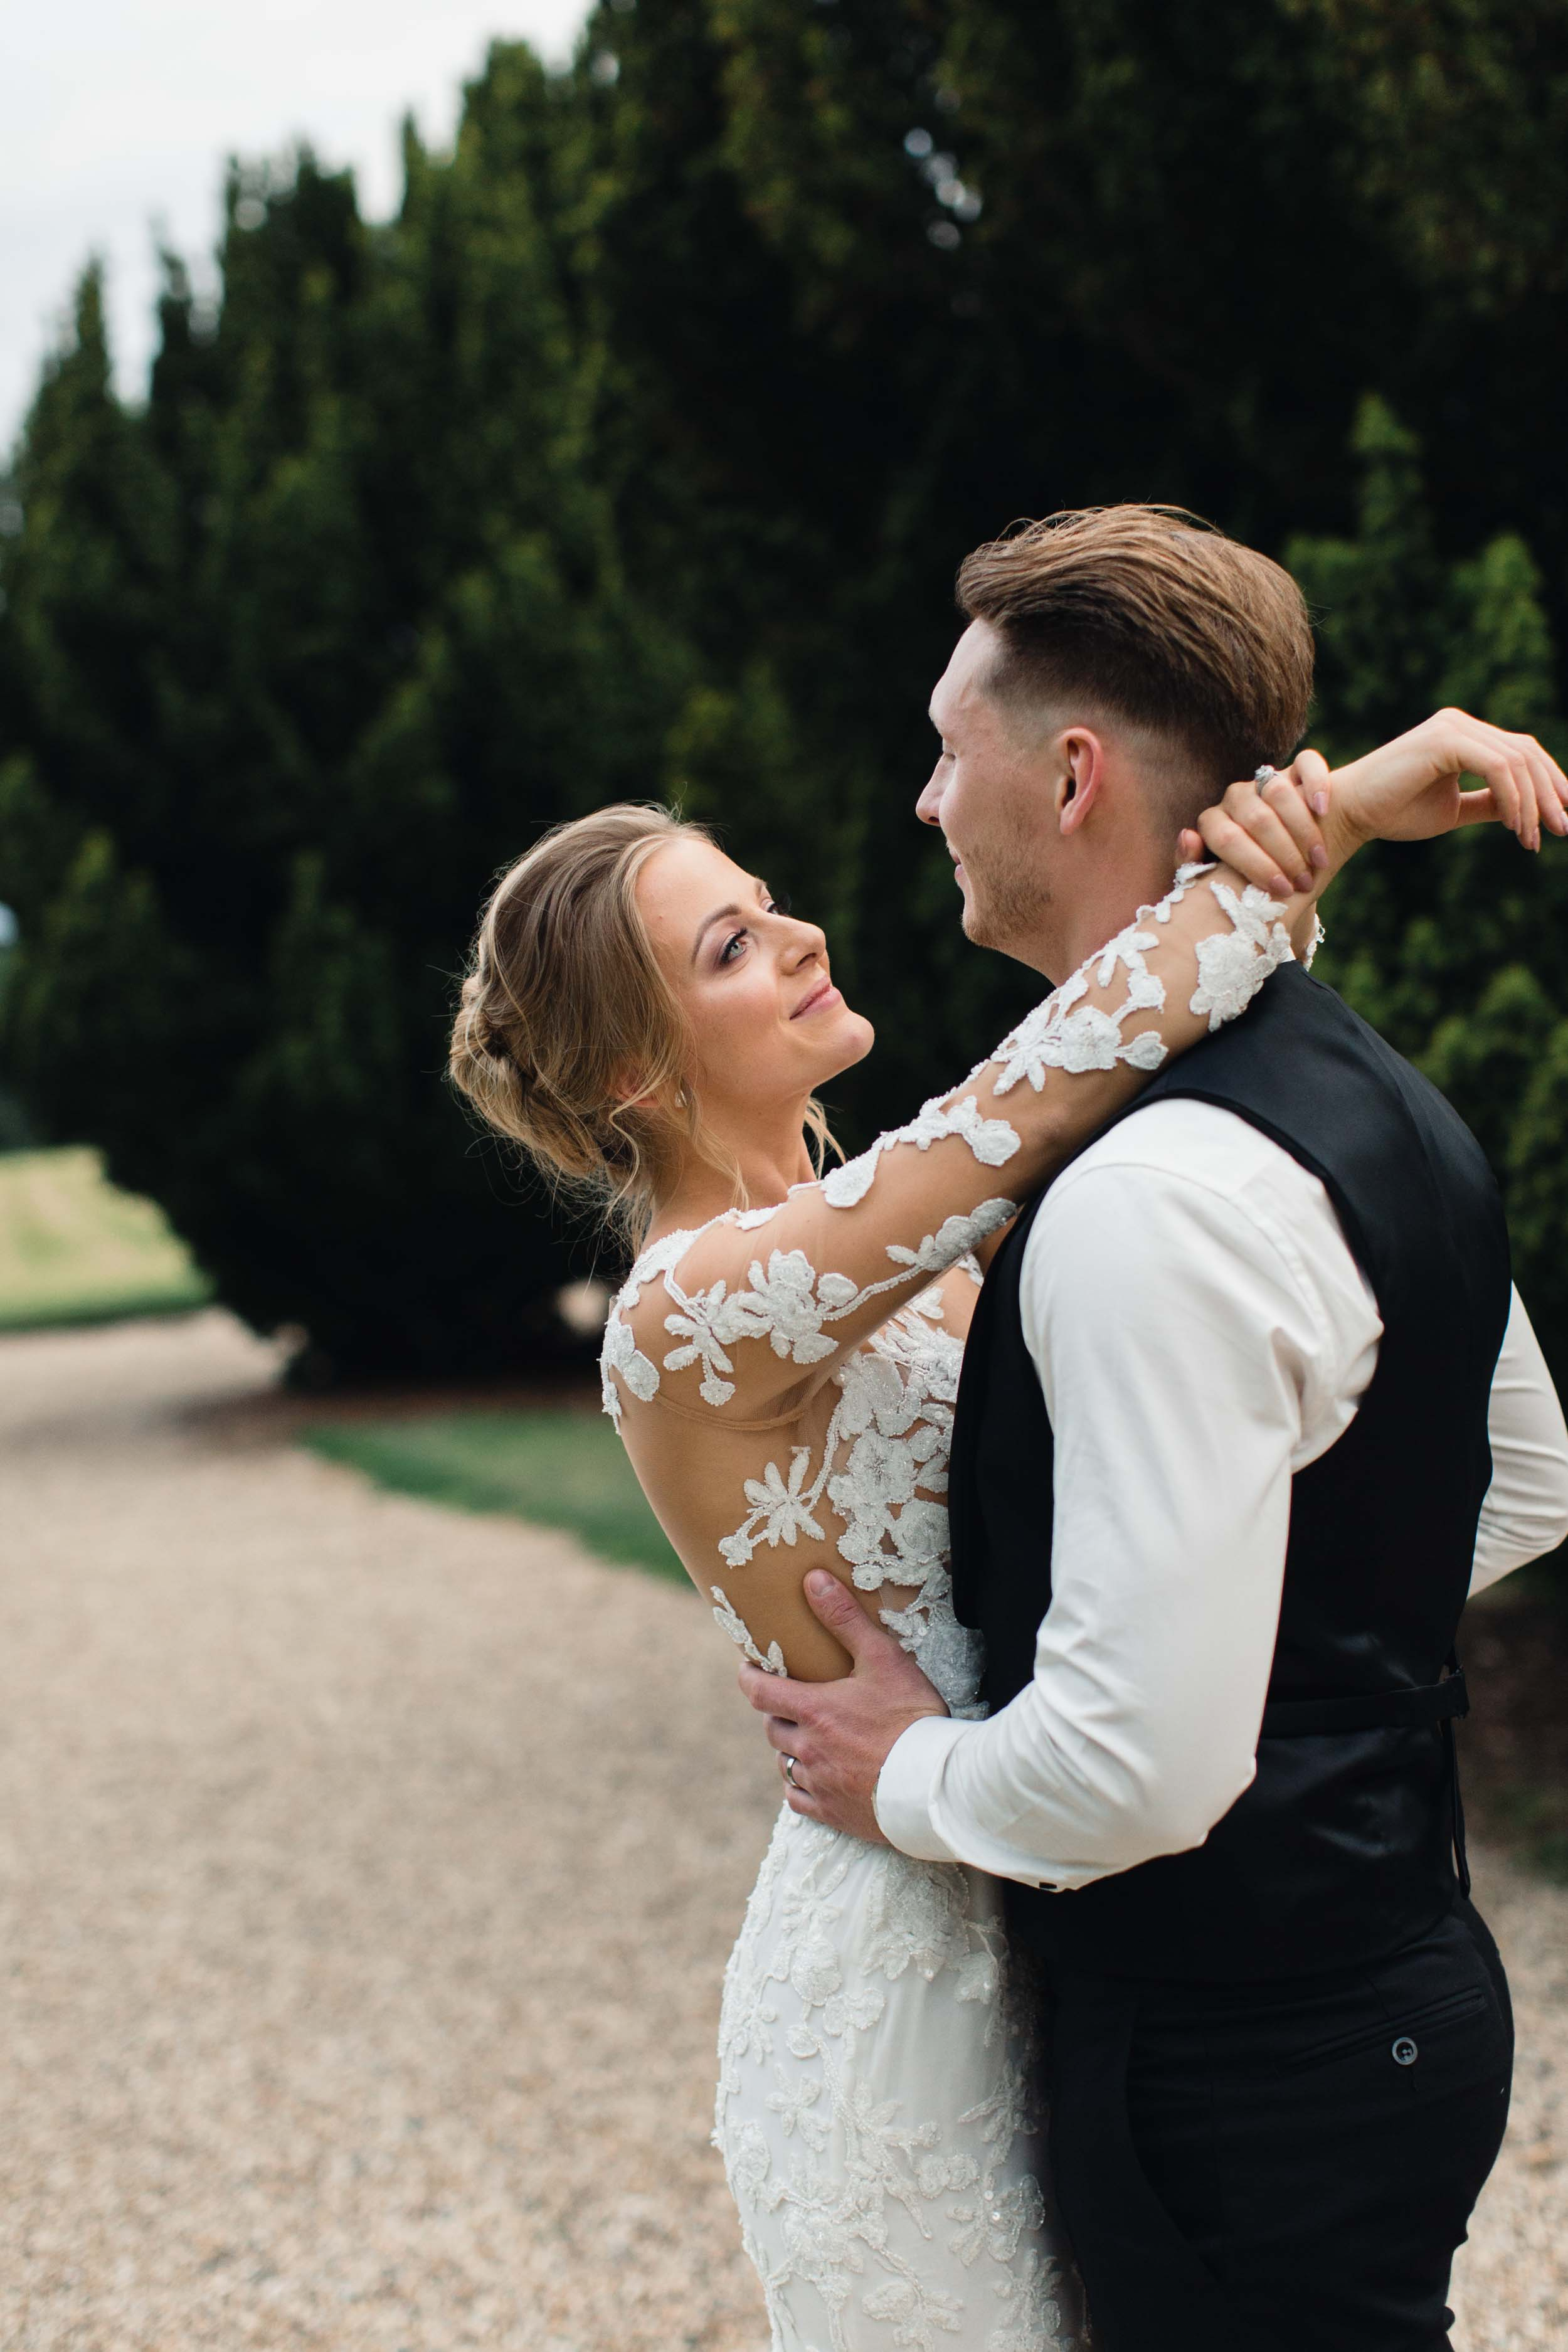 Gosfield Hall Wedding Photography Surrey Luxury Photographer 95.jpg